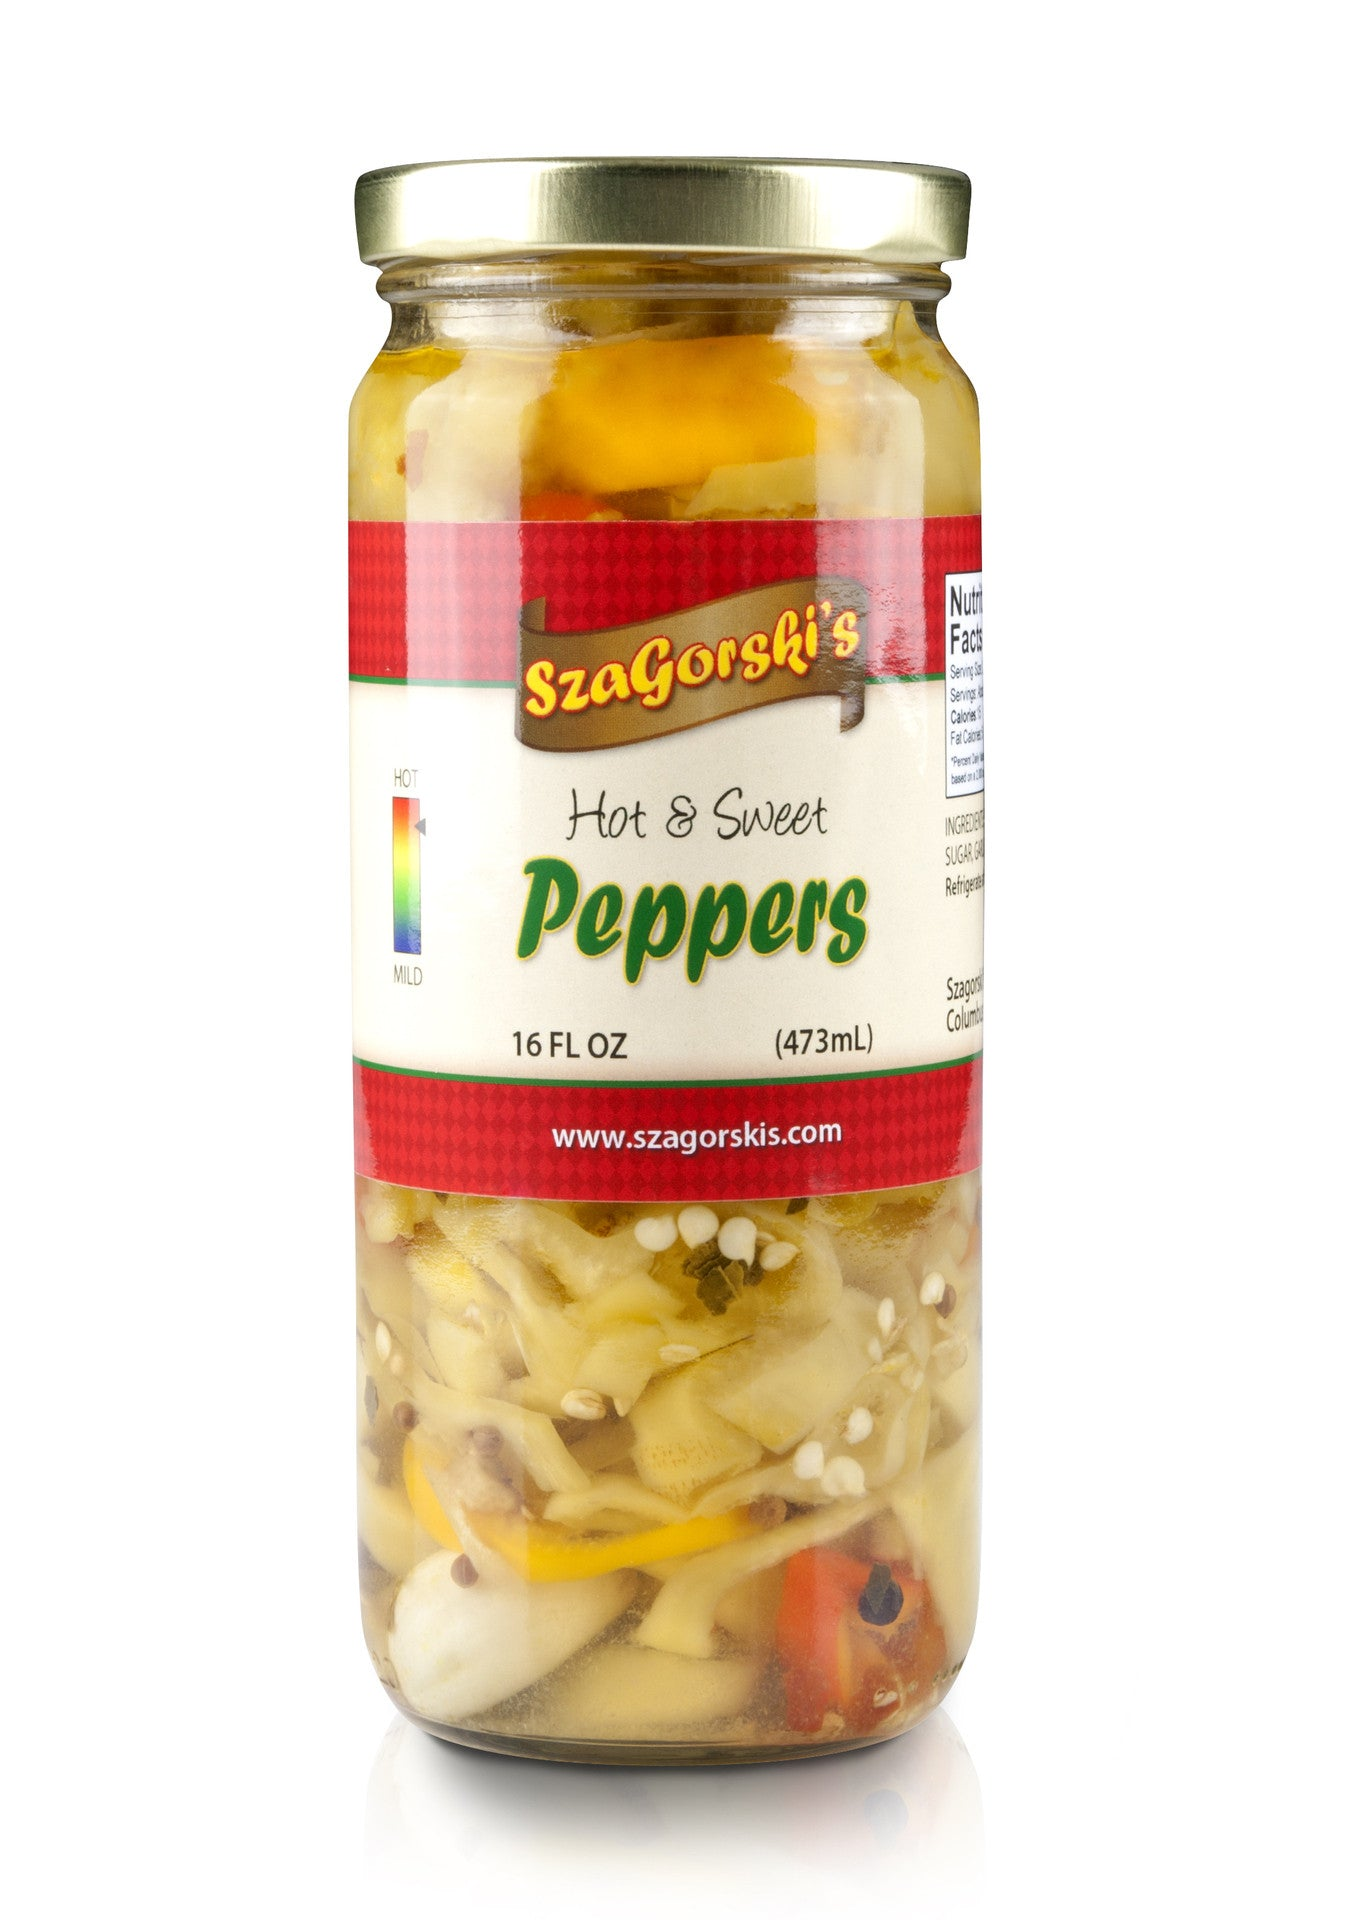 Szagorski's Hot and Sweet Peppers - Celebrate Local, Shop The Best of Ohio